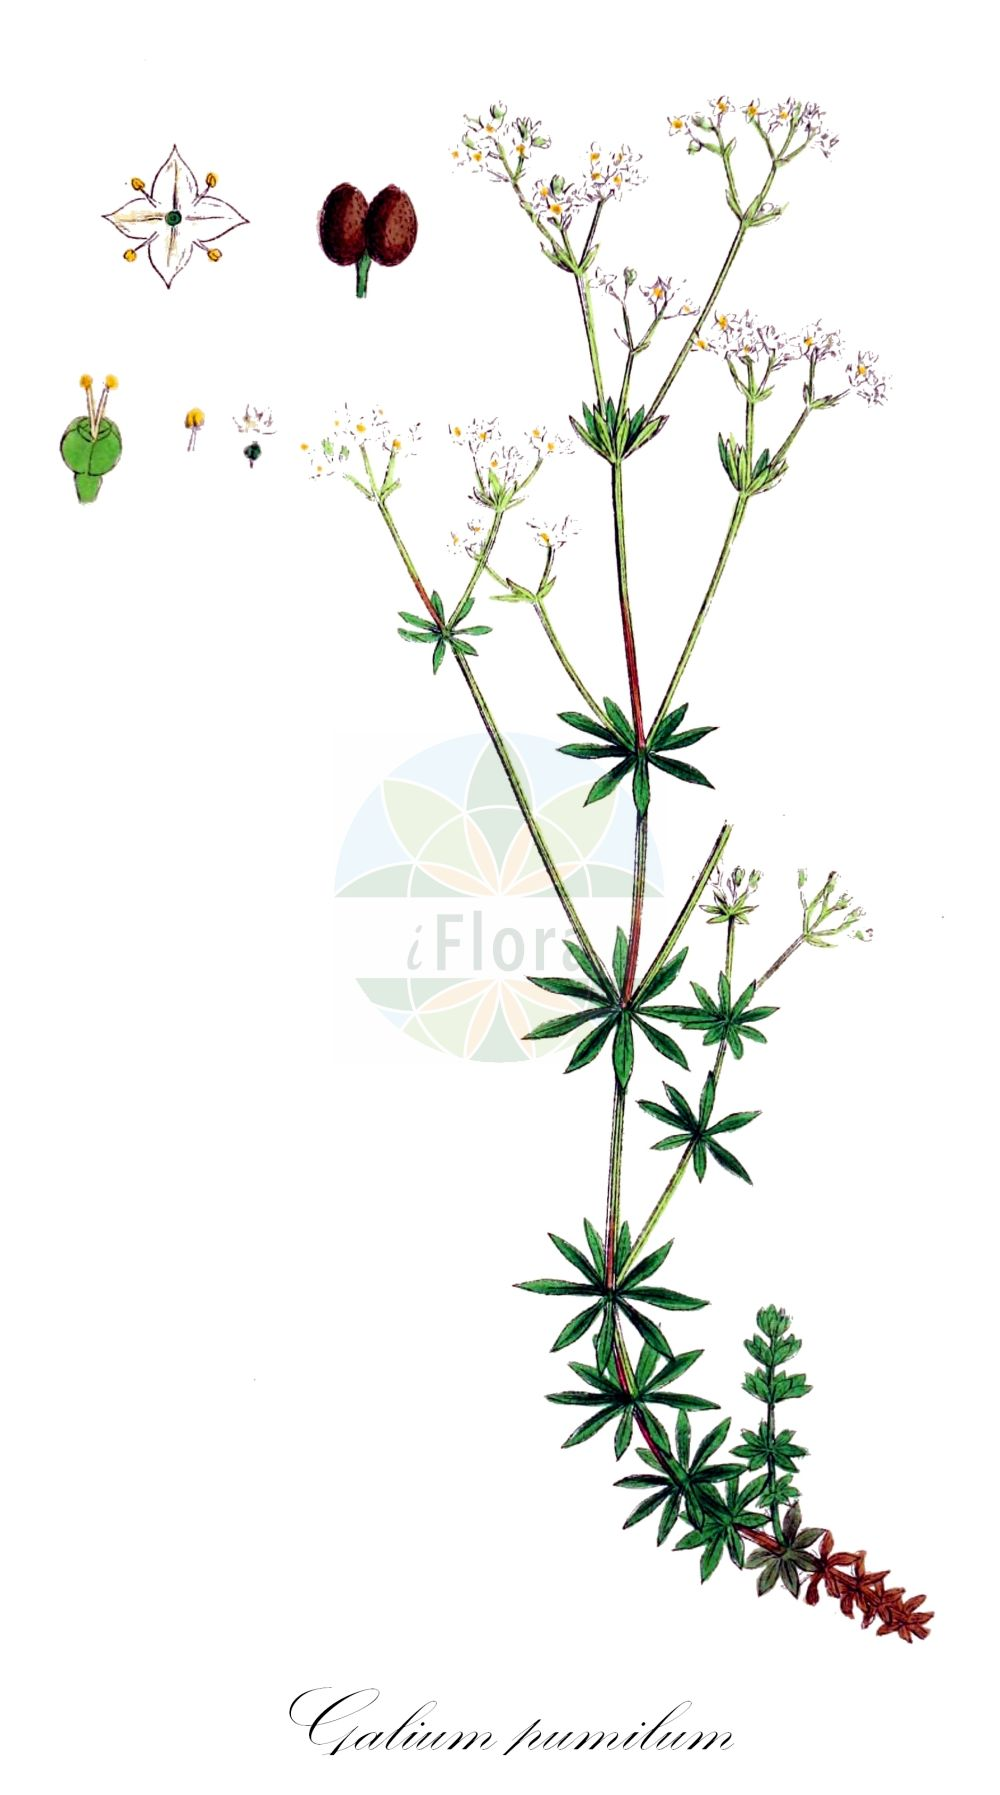 Historische Abbildung von Galium pumilum (Zierliches Labkraut - Slender Bedstraw). Das Bild zeigt Blatt, Bluete, Frucht und Same. ---- Historical Drawing of Galium pumilum (Zierliches Labkraut - Slender Bedstraw).The image is showing leaf, flower, fruit and seed.(Galium pumilum,Zierliches Labkraut,Slender Bedstraw,Galium asperum,Galium chlorophyllum,Galium laeve,Galium sylvestre,Heide-Labkraut,Galium,Labkraut,Bedstraw,Rubiaceae,Roetegewaechse;Kaffeegewaechse;Krappgewaechse;Labkrautgewaechse,Bedstraw family,Blatt,Bluete,Frucht,Same,leaf,flower,fruit,seed,Sowerby (1790-1813))